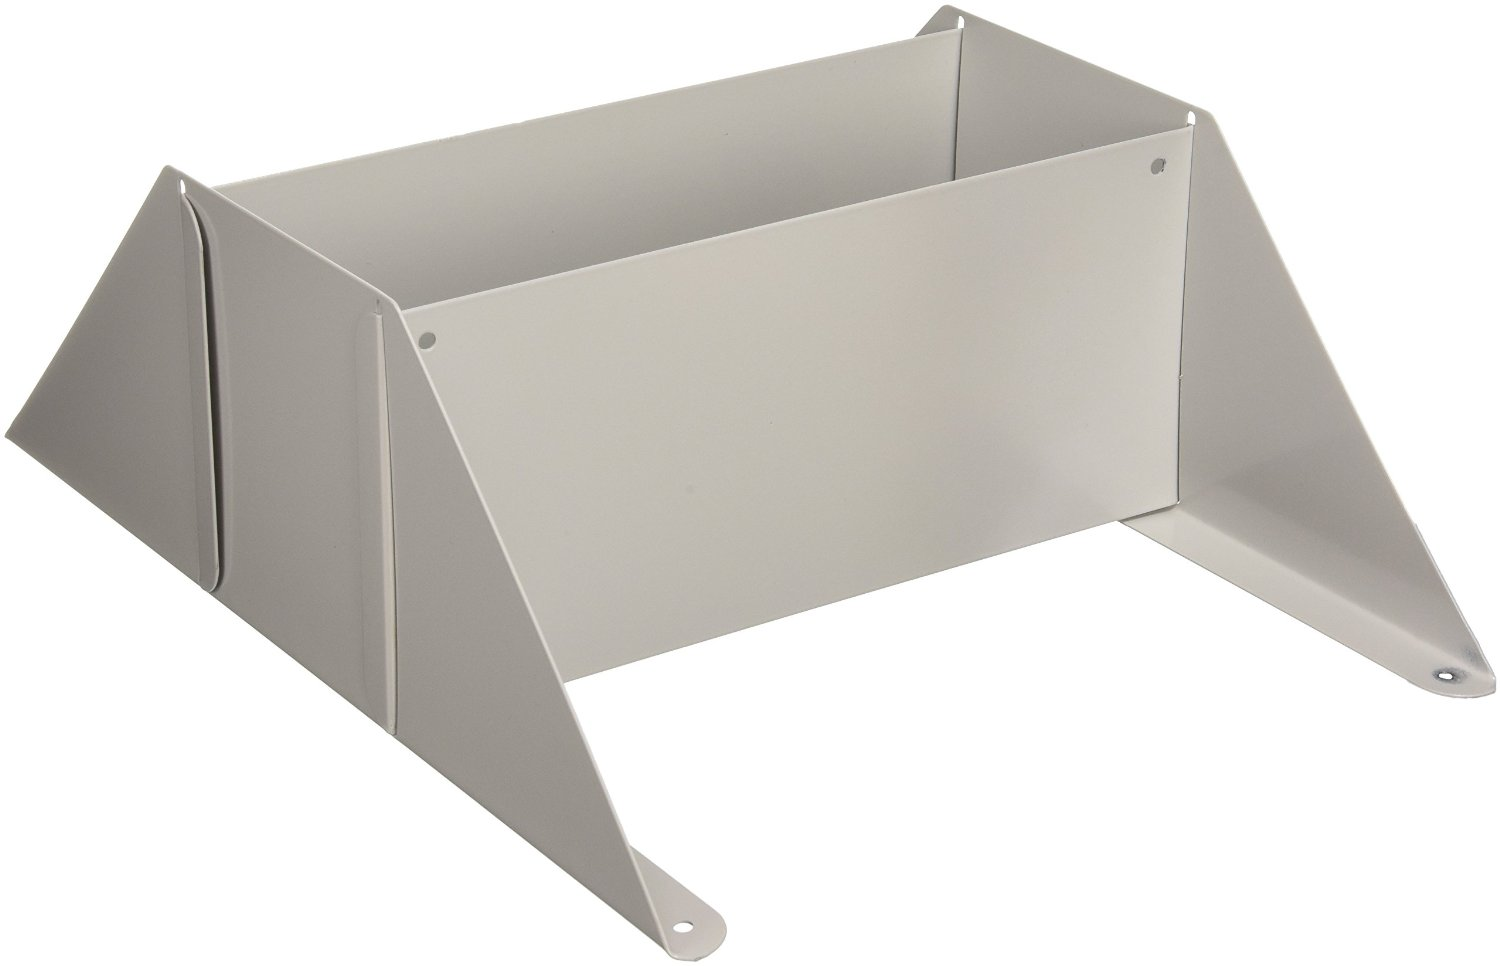 Buddy Products Base for Single Unit Display Racks, Steel, 10 x 12.13 x 4.88 Inches, Platinum (0817-32)